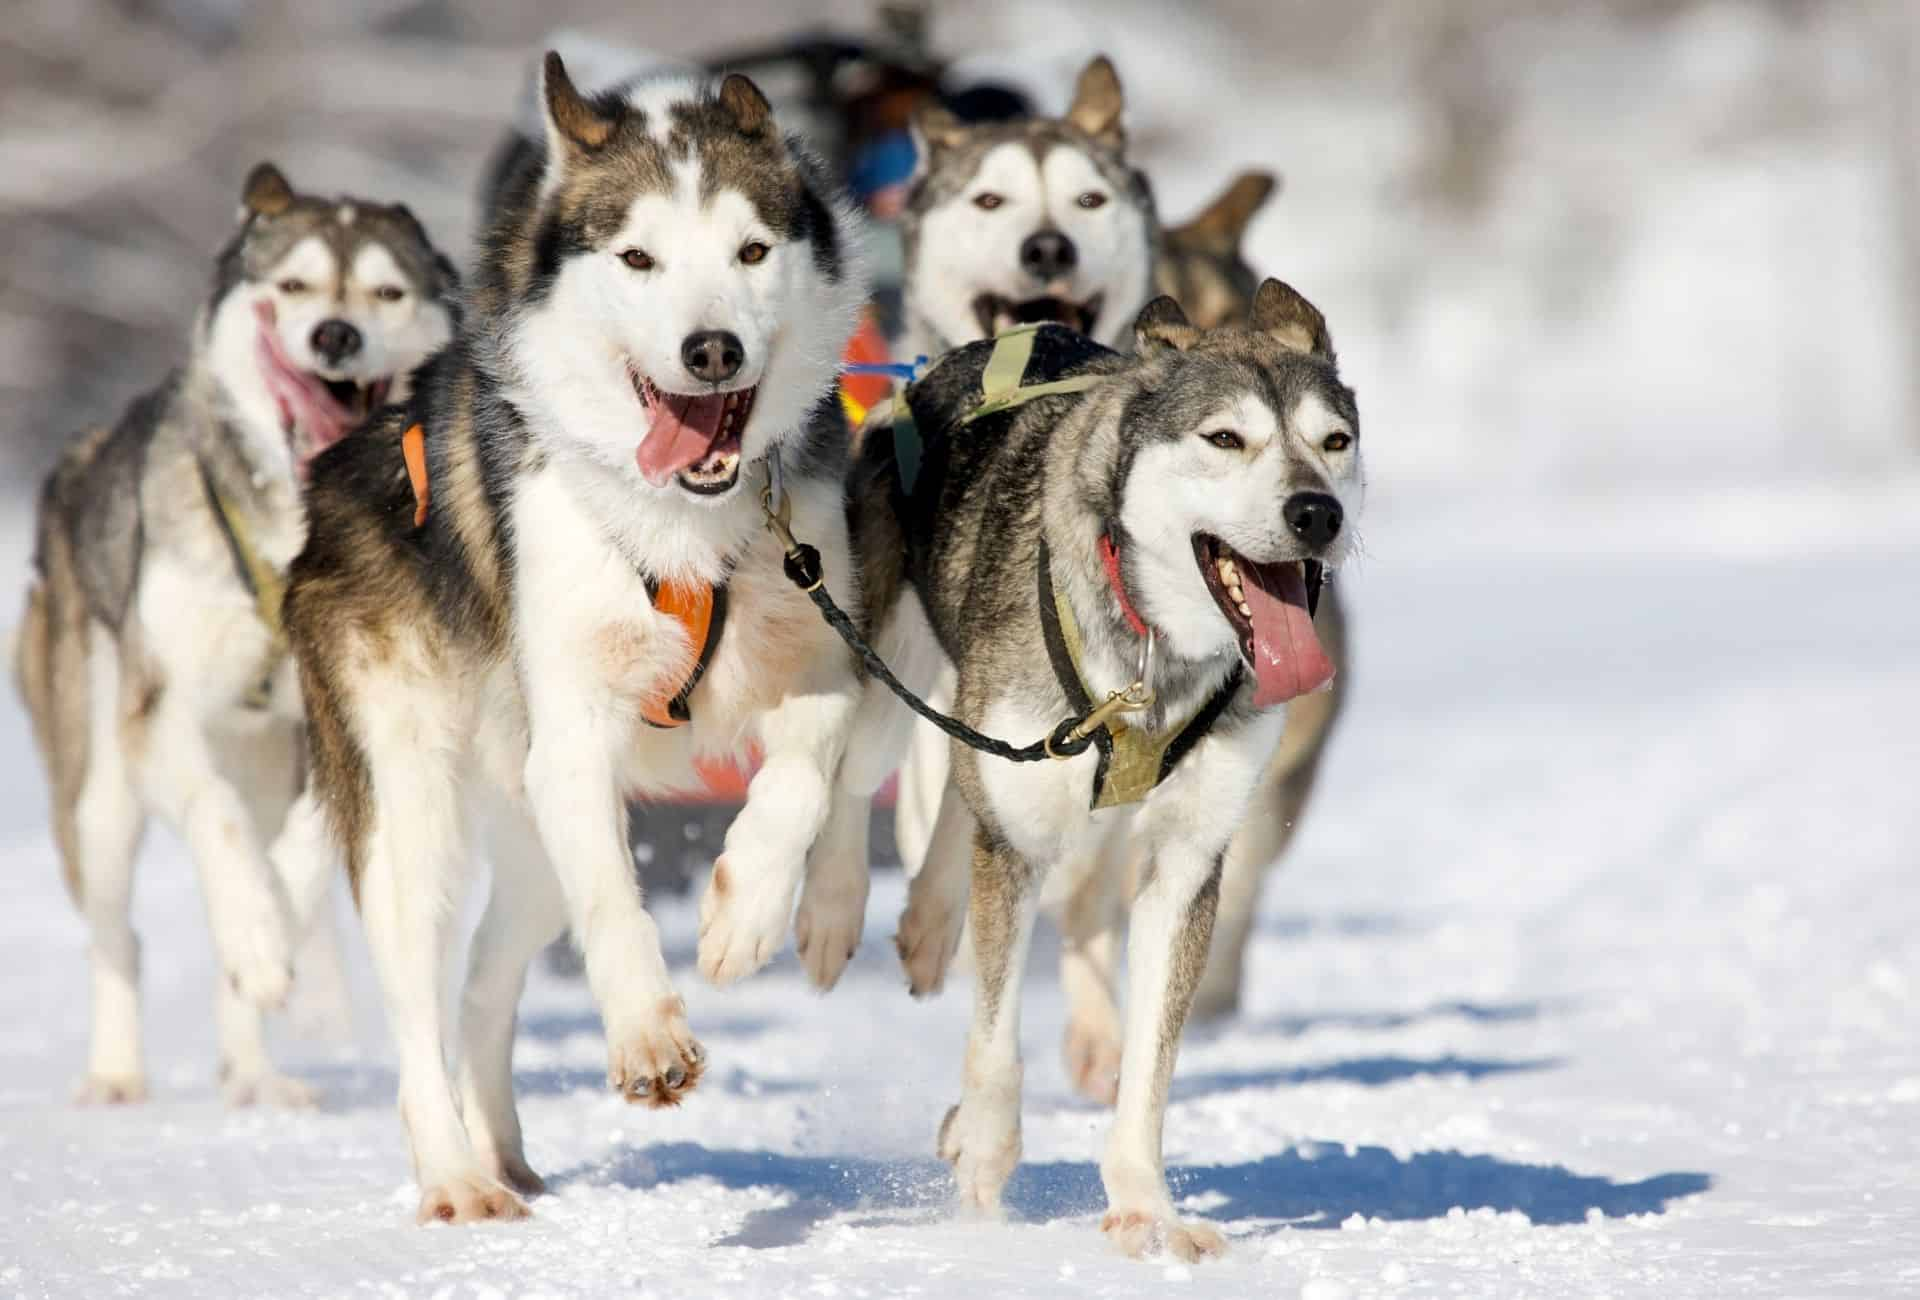 Several Huskies pull a sled in the snow, running with their tongues out.